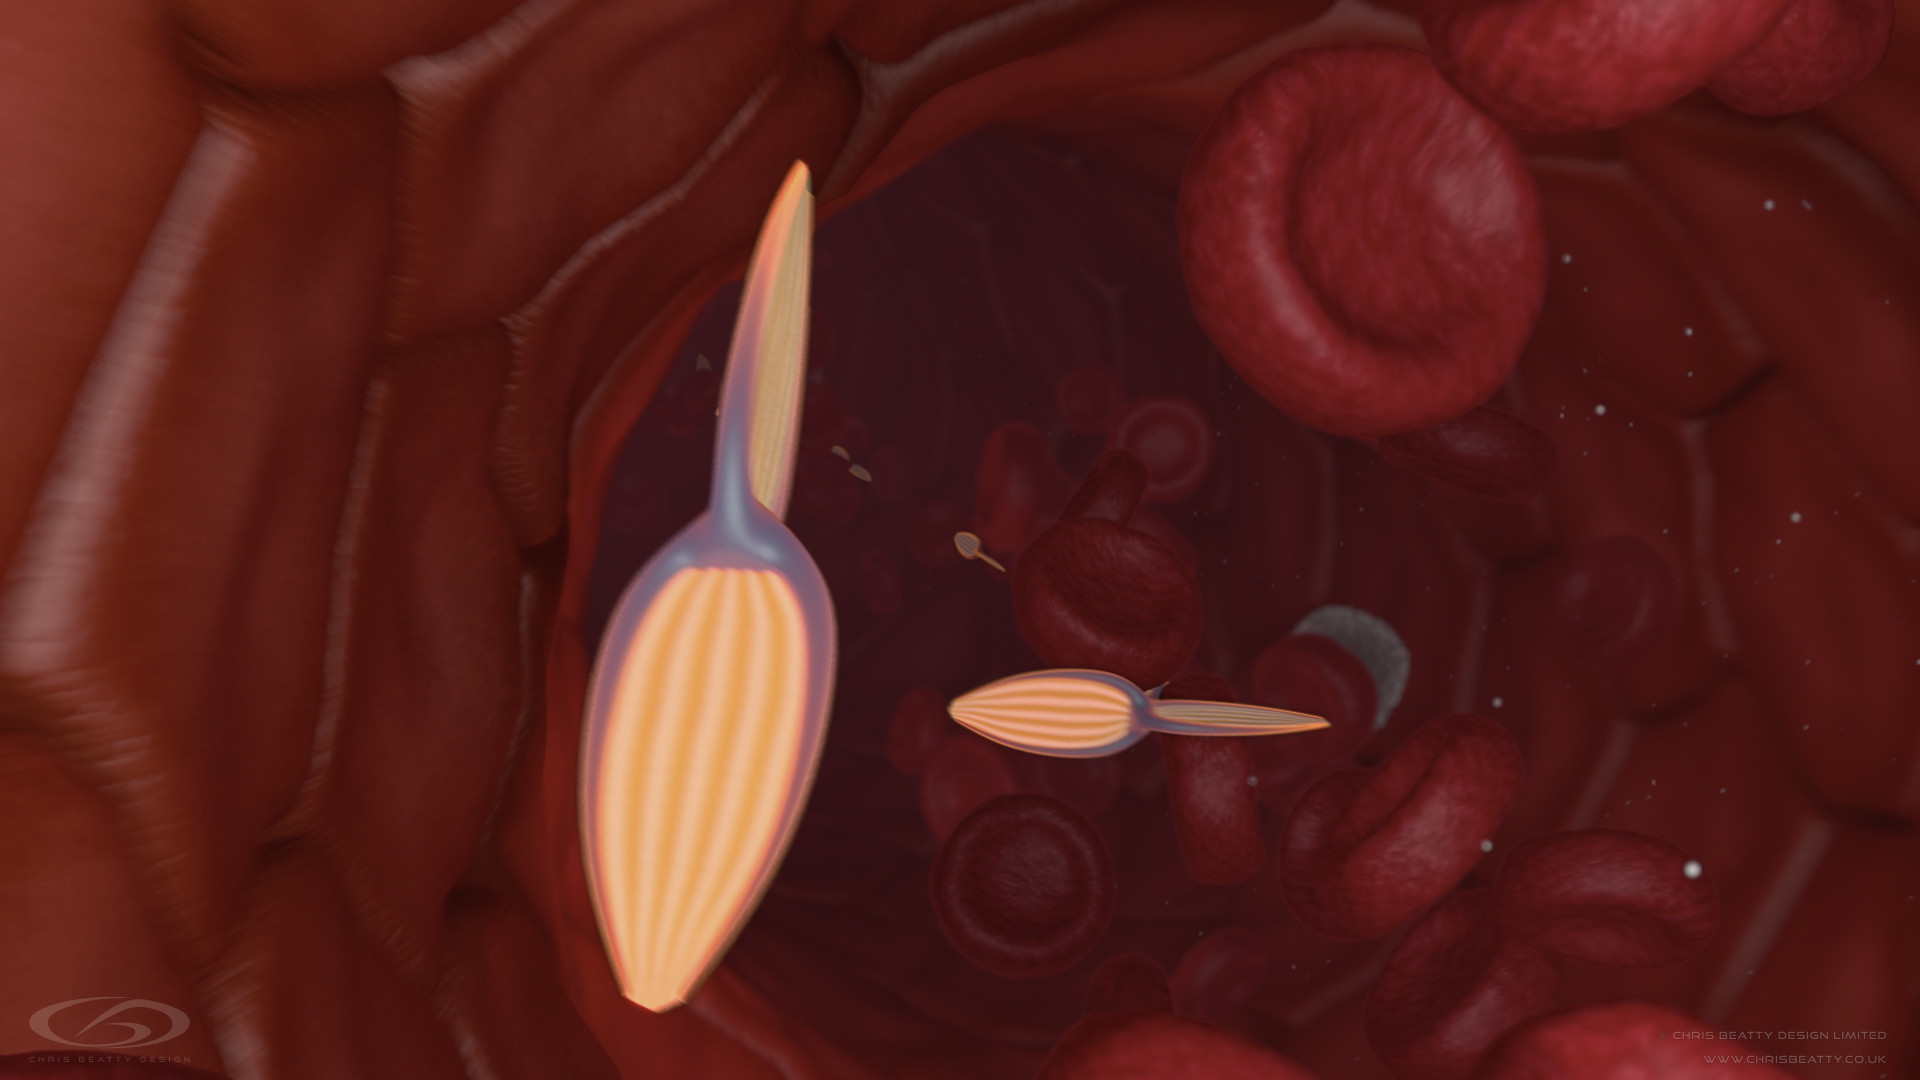 Medical 3d Animation